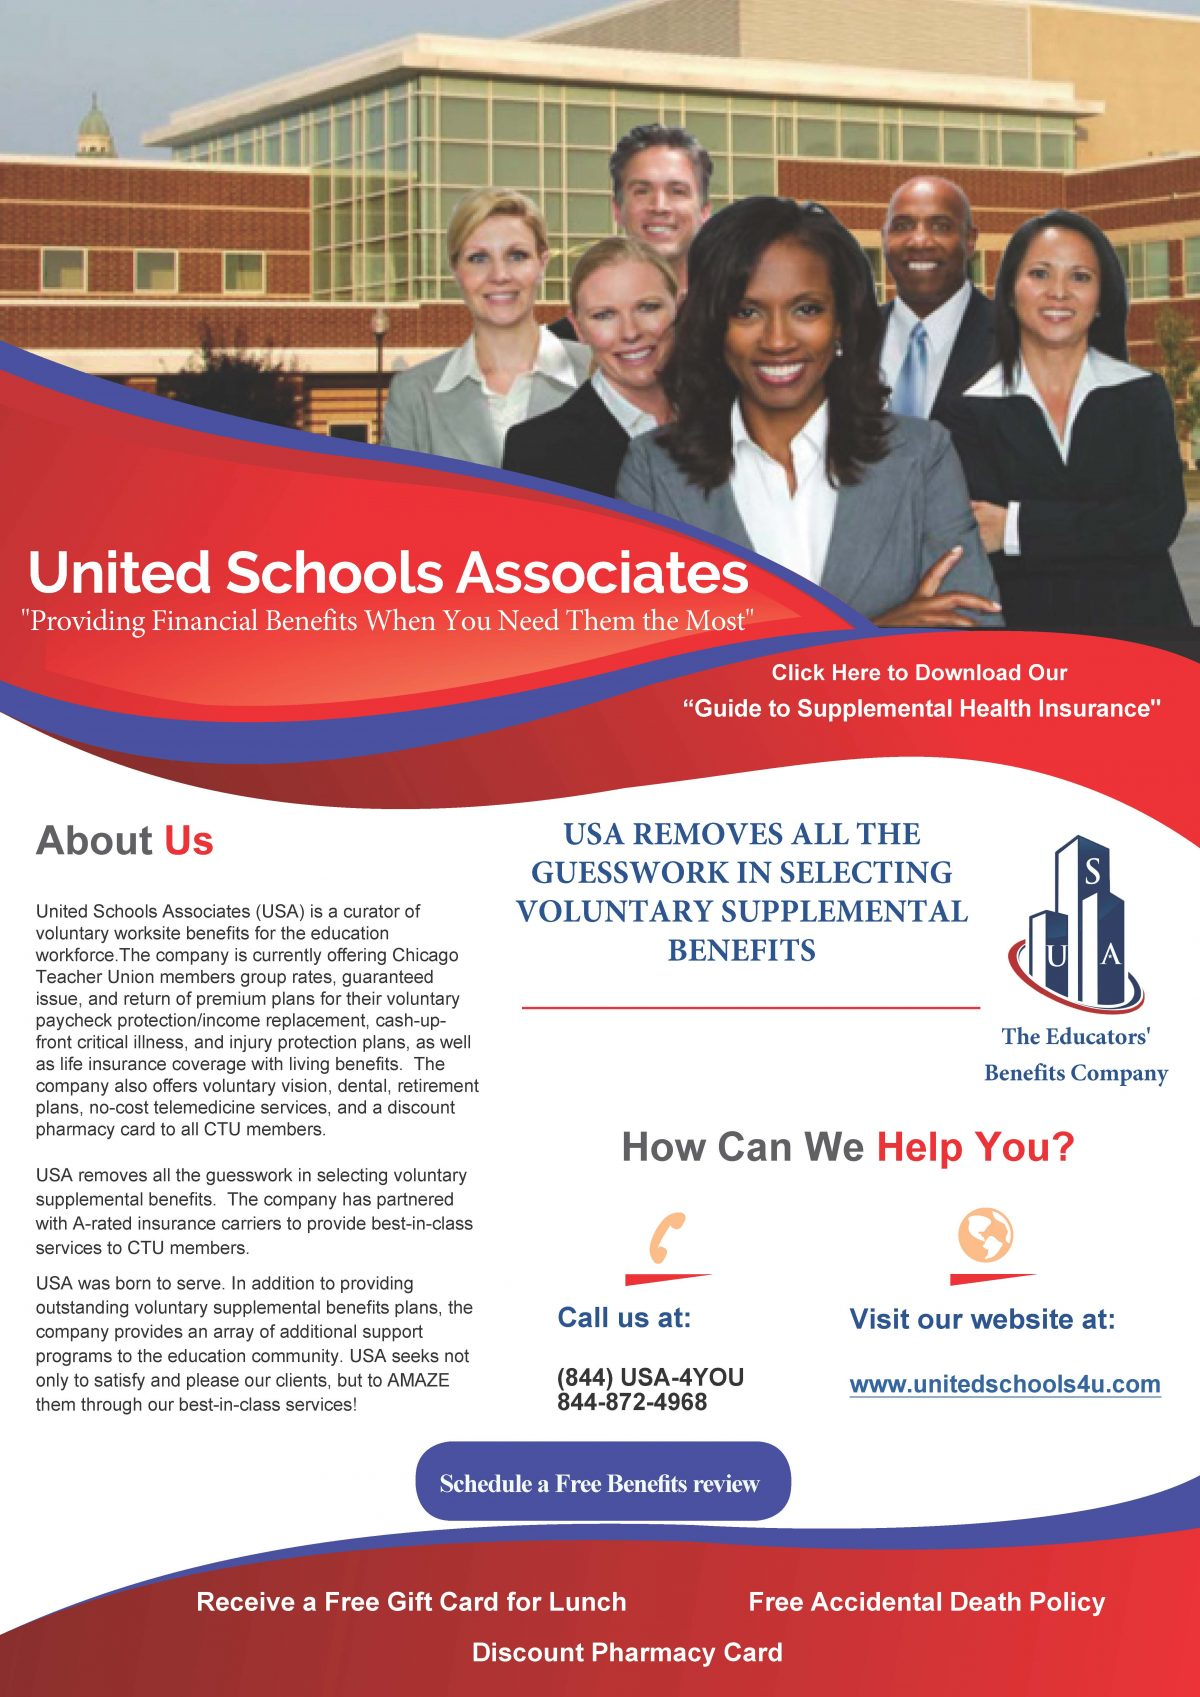 Extensive advertisement for United School Associates, who are 'a curator of voluntary worksite benefits for the education workforce.' USA is a vendor approved by the CTU Policies Committee. Click link for their website with further explanations.